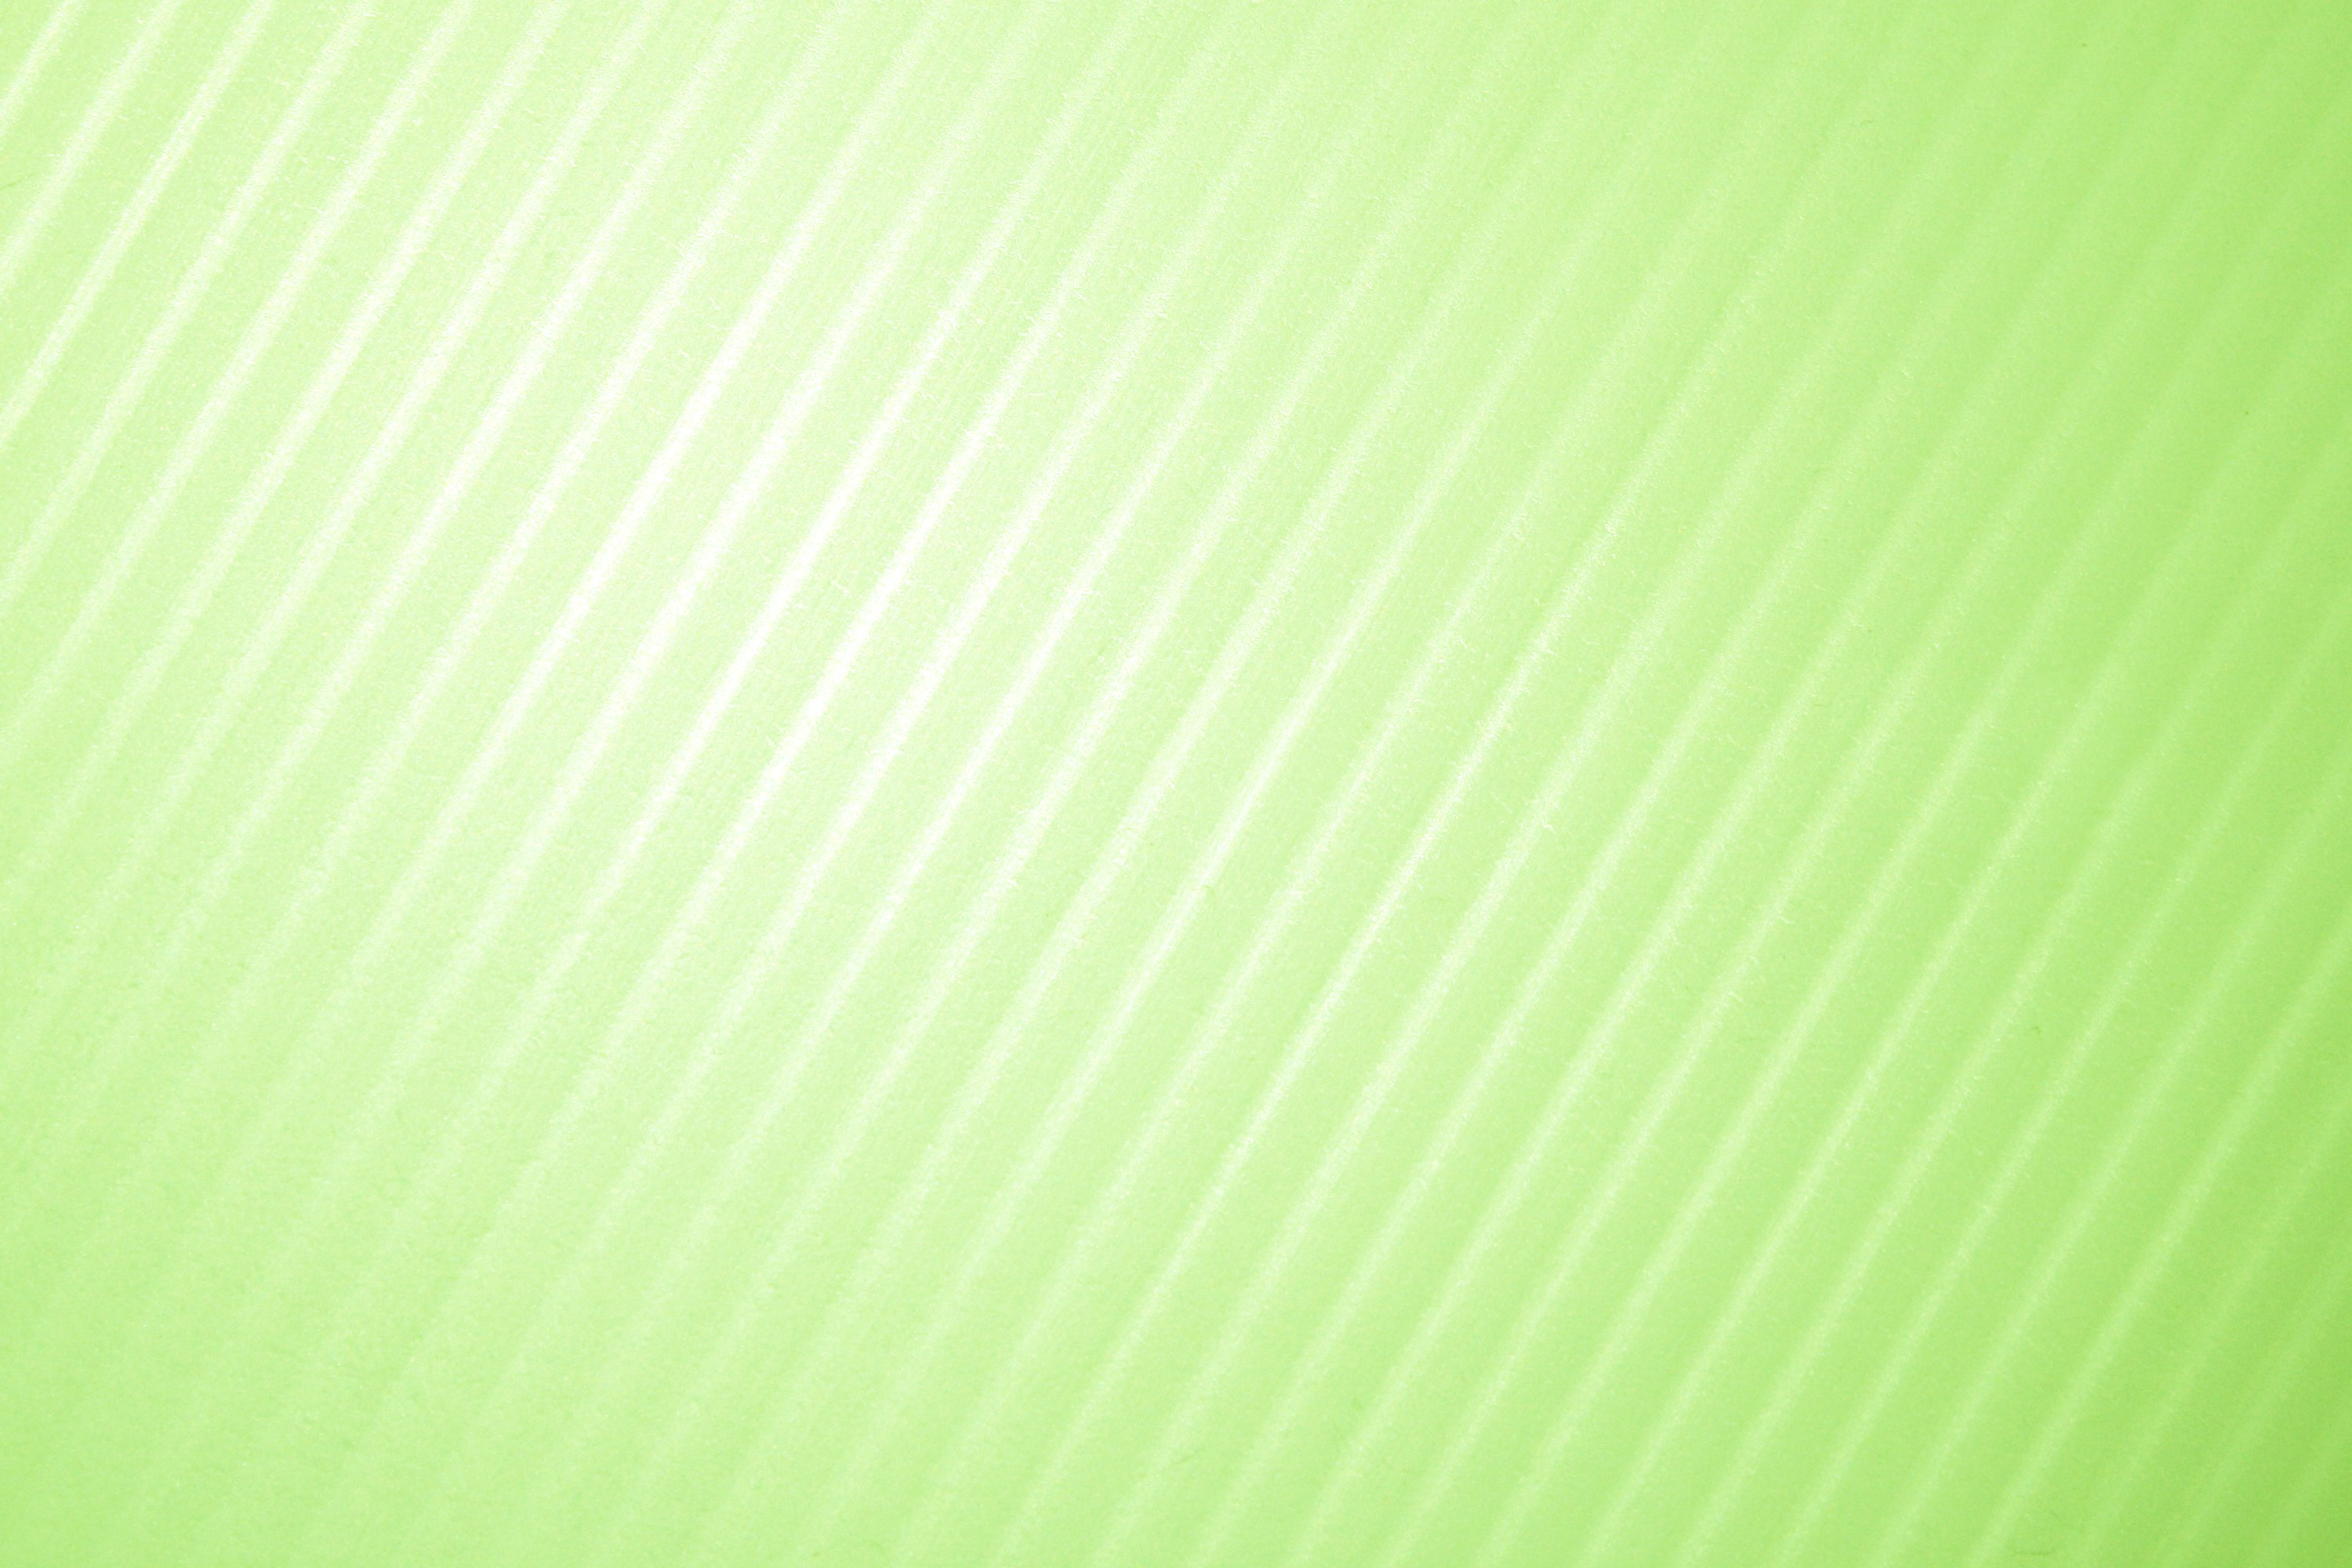 Lime Green Diagonal Striped Plastic Texture Picture | Free ...